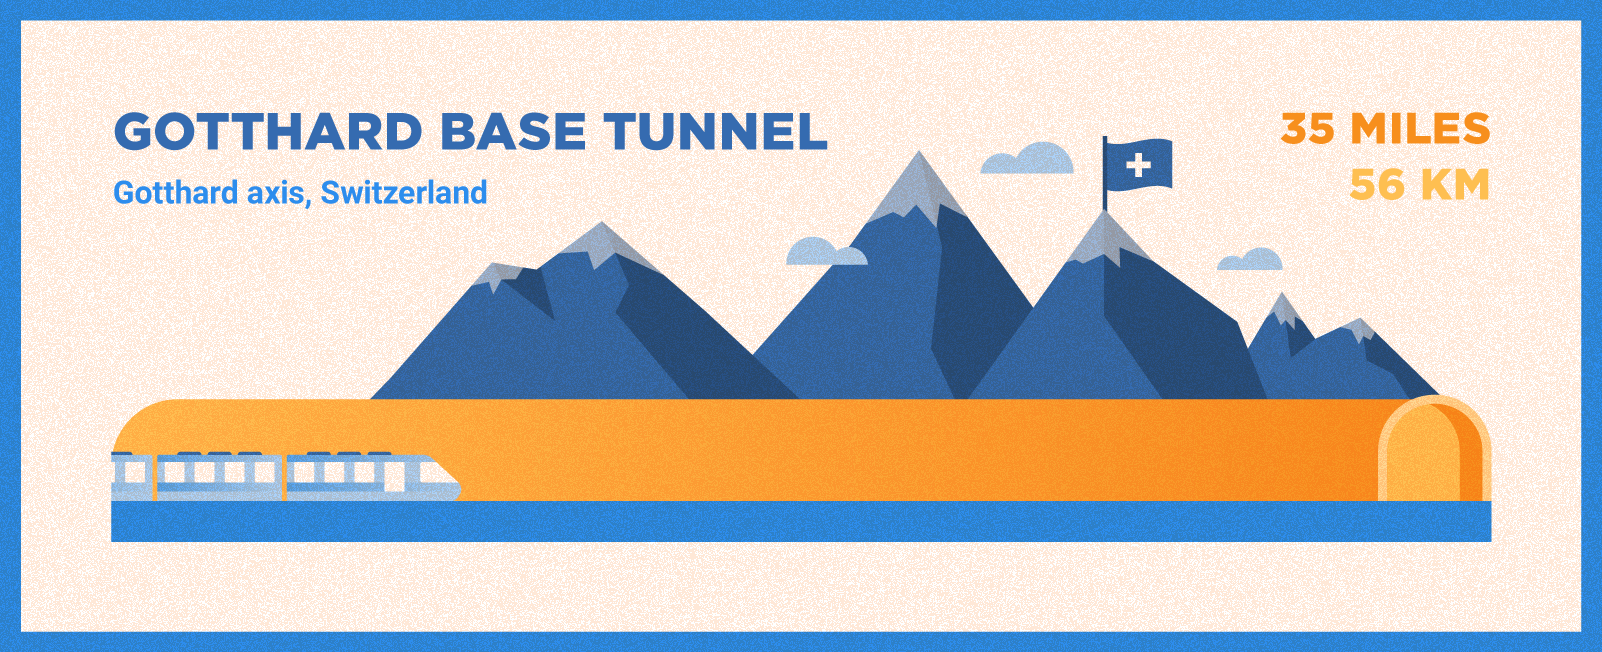 Gotthard BaseTunnel is 35 miles long and located on the Gotthard axis, Switzerland.